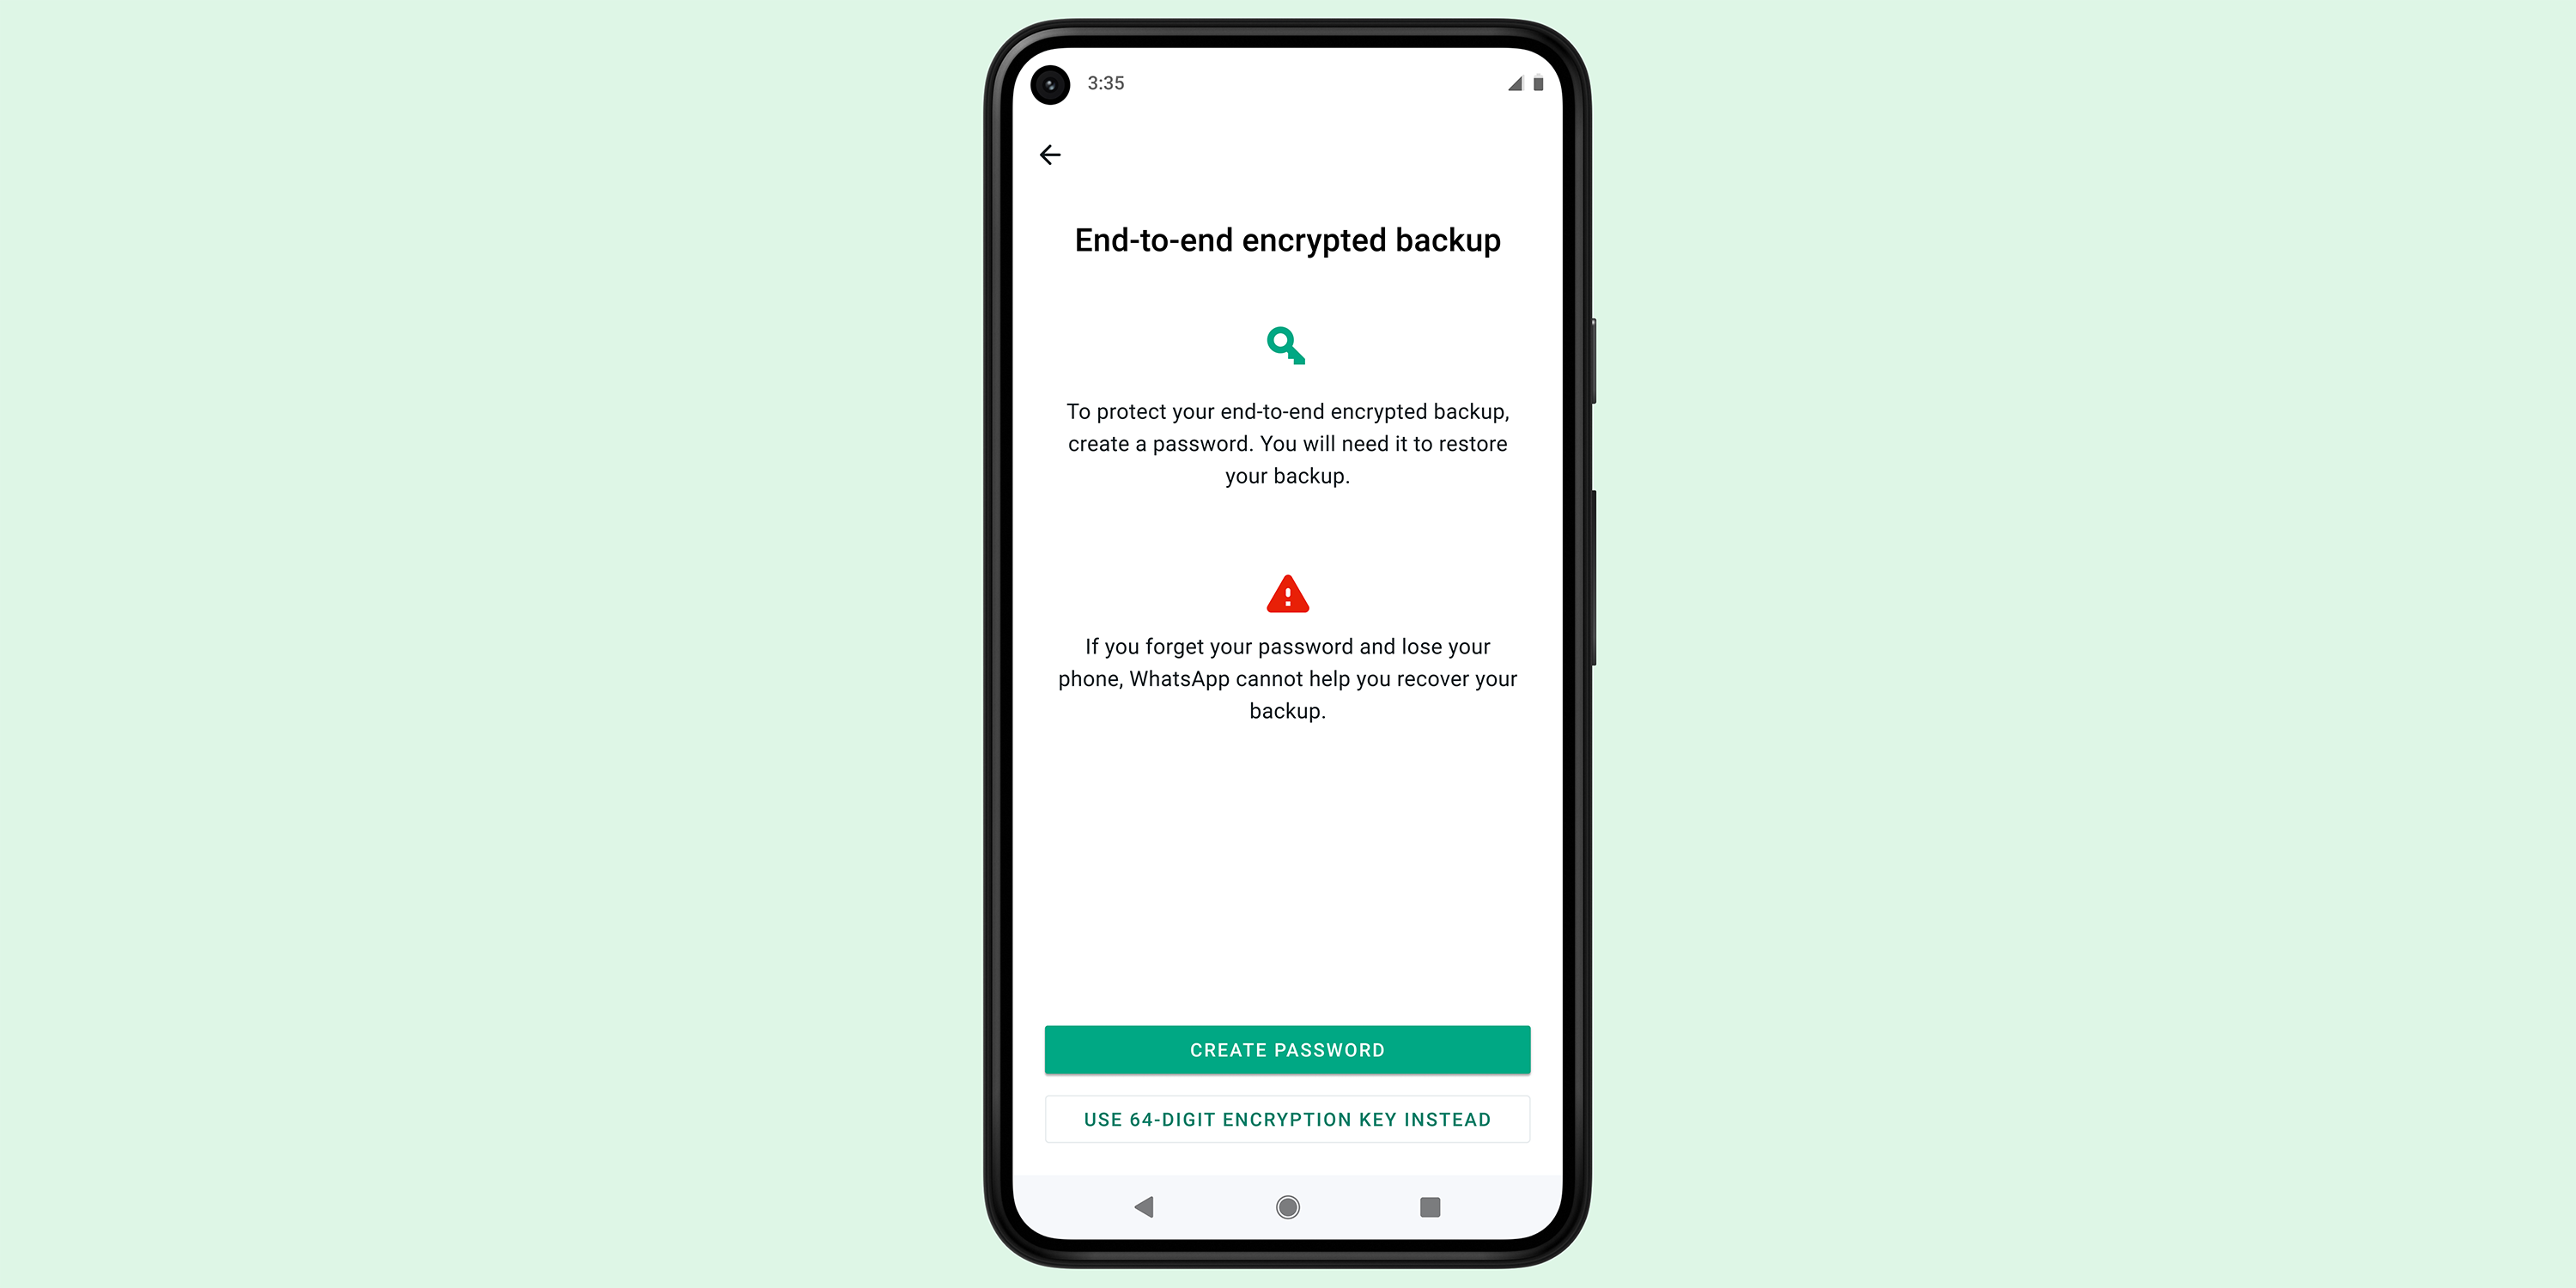 WhatsApp end-to-end encrypted backups rolling out; may put pressure on Apple